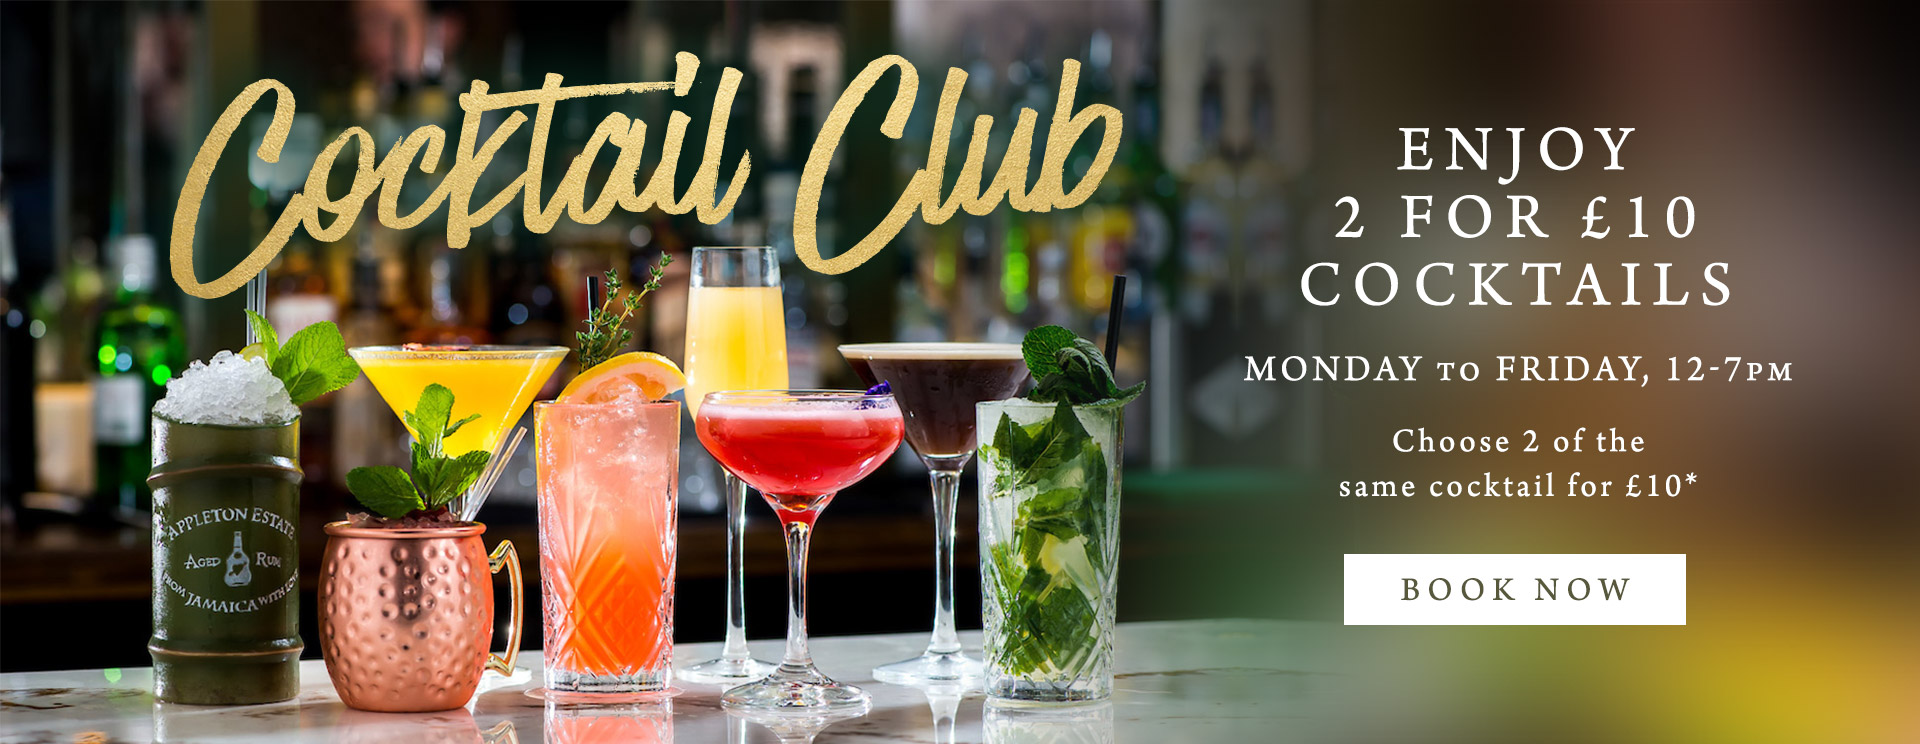 2 for £10 cocktails at The Cliff